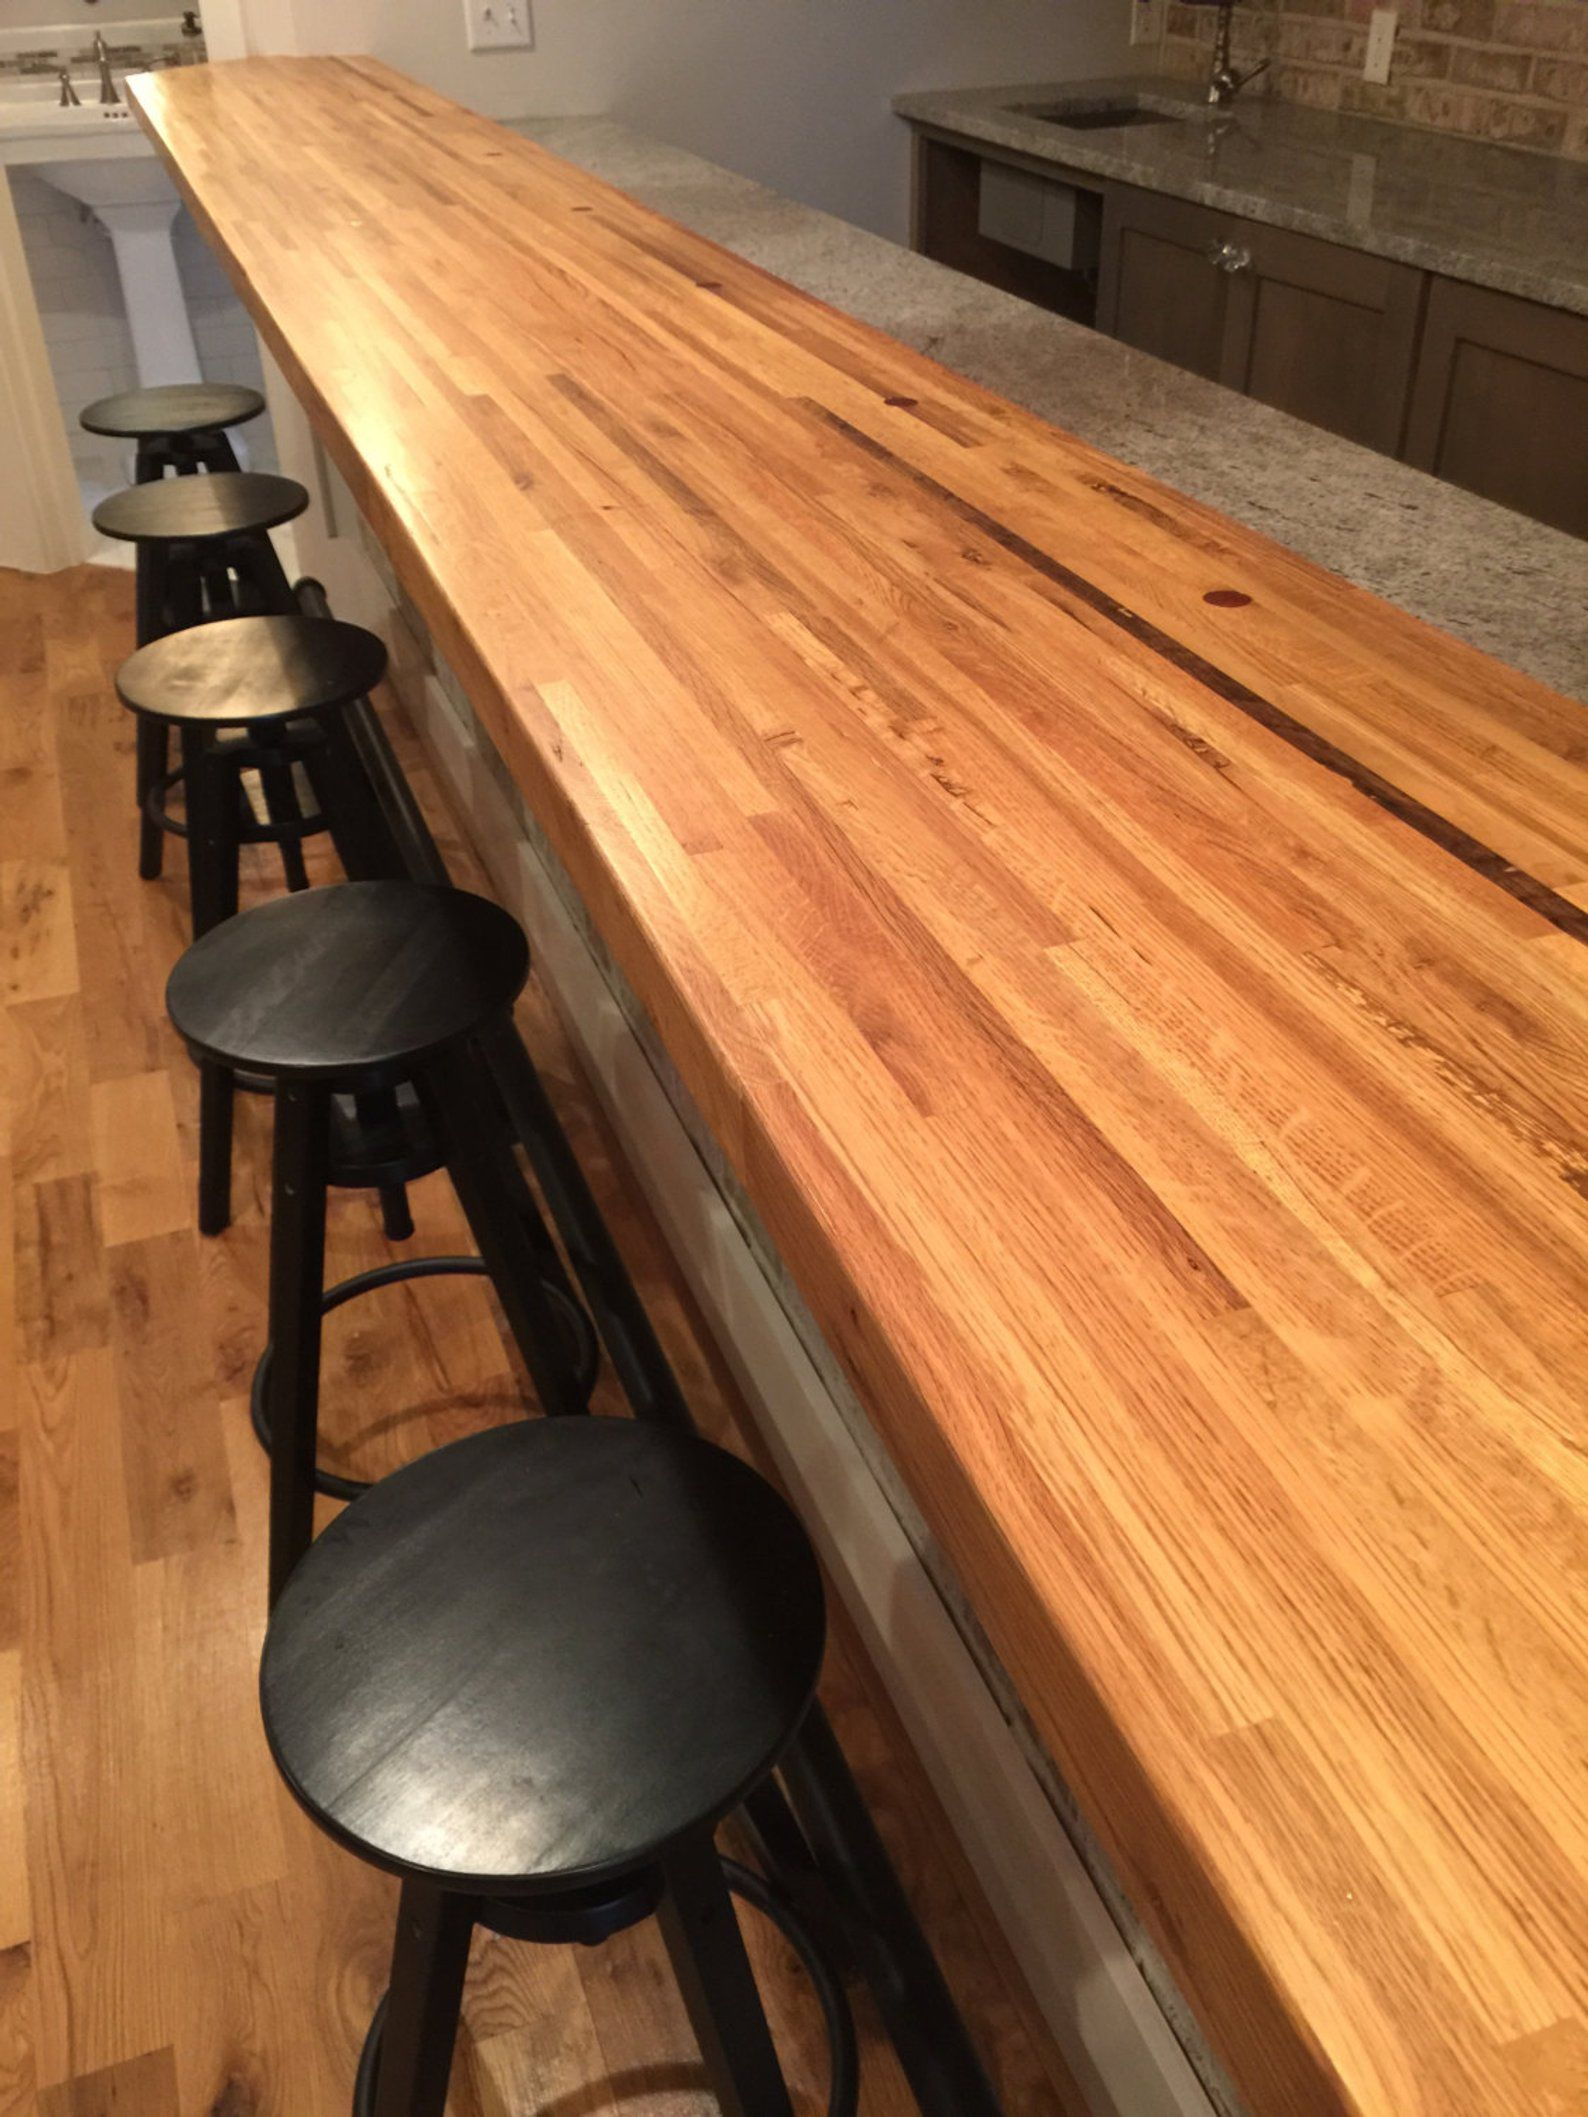 Butcher Block Countertops Etsy Countertops Butcher Block